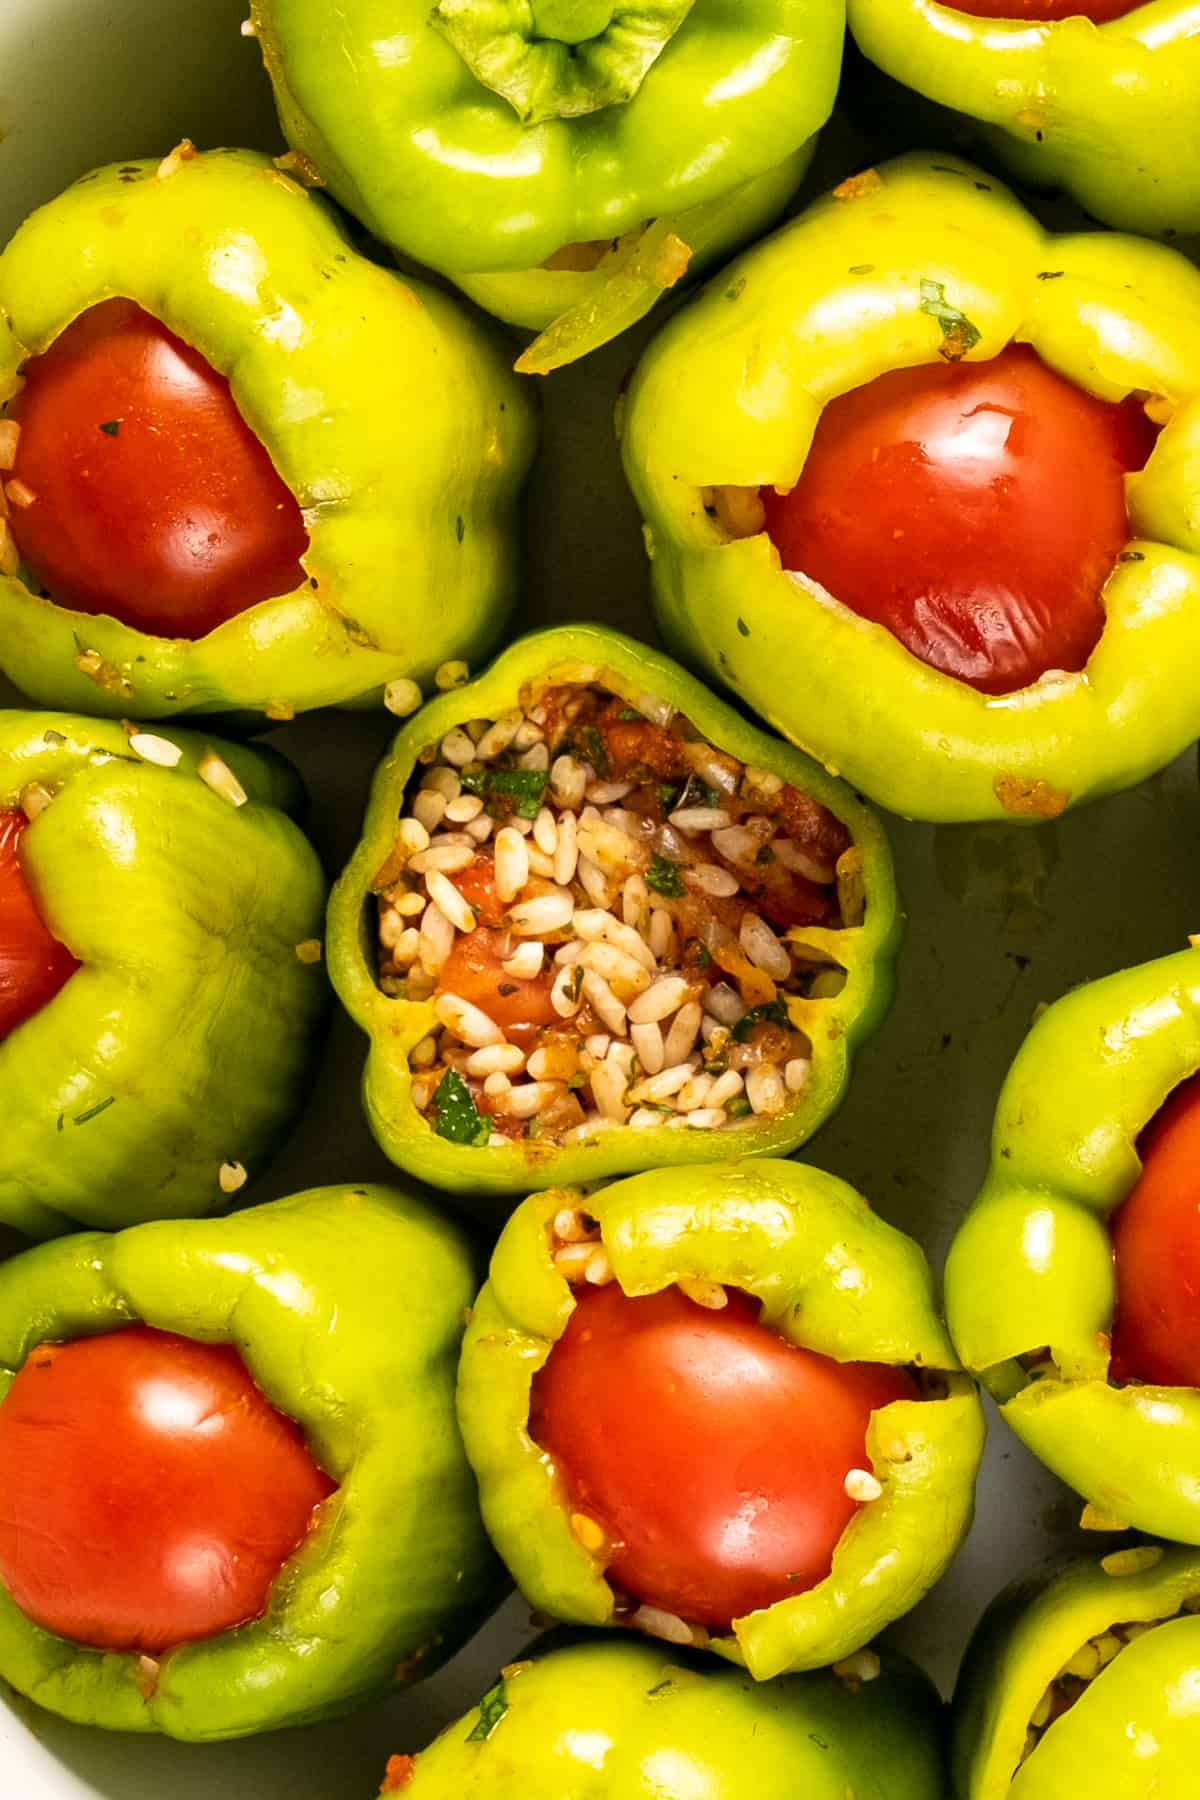 Green peppers stuffed with rice and topped with tomatoes.